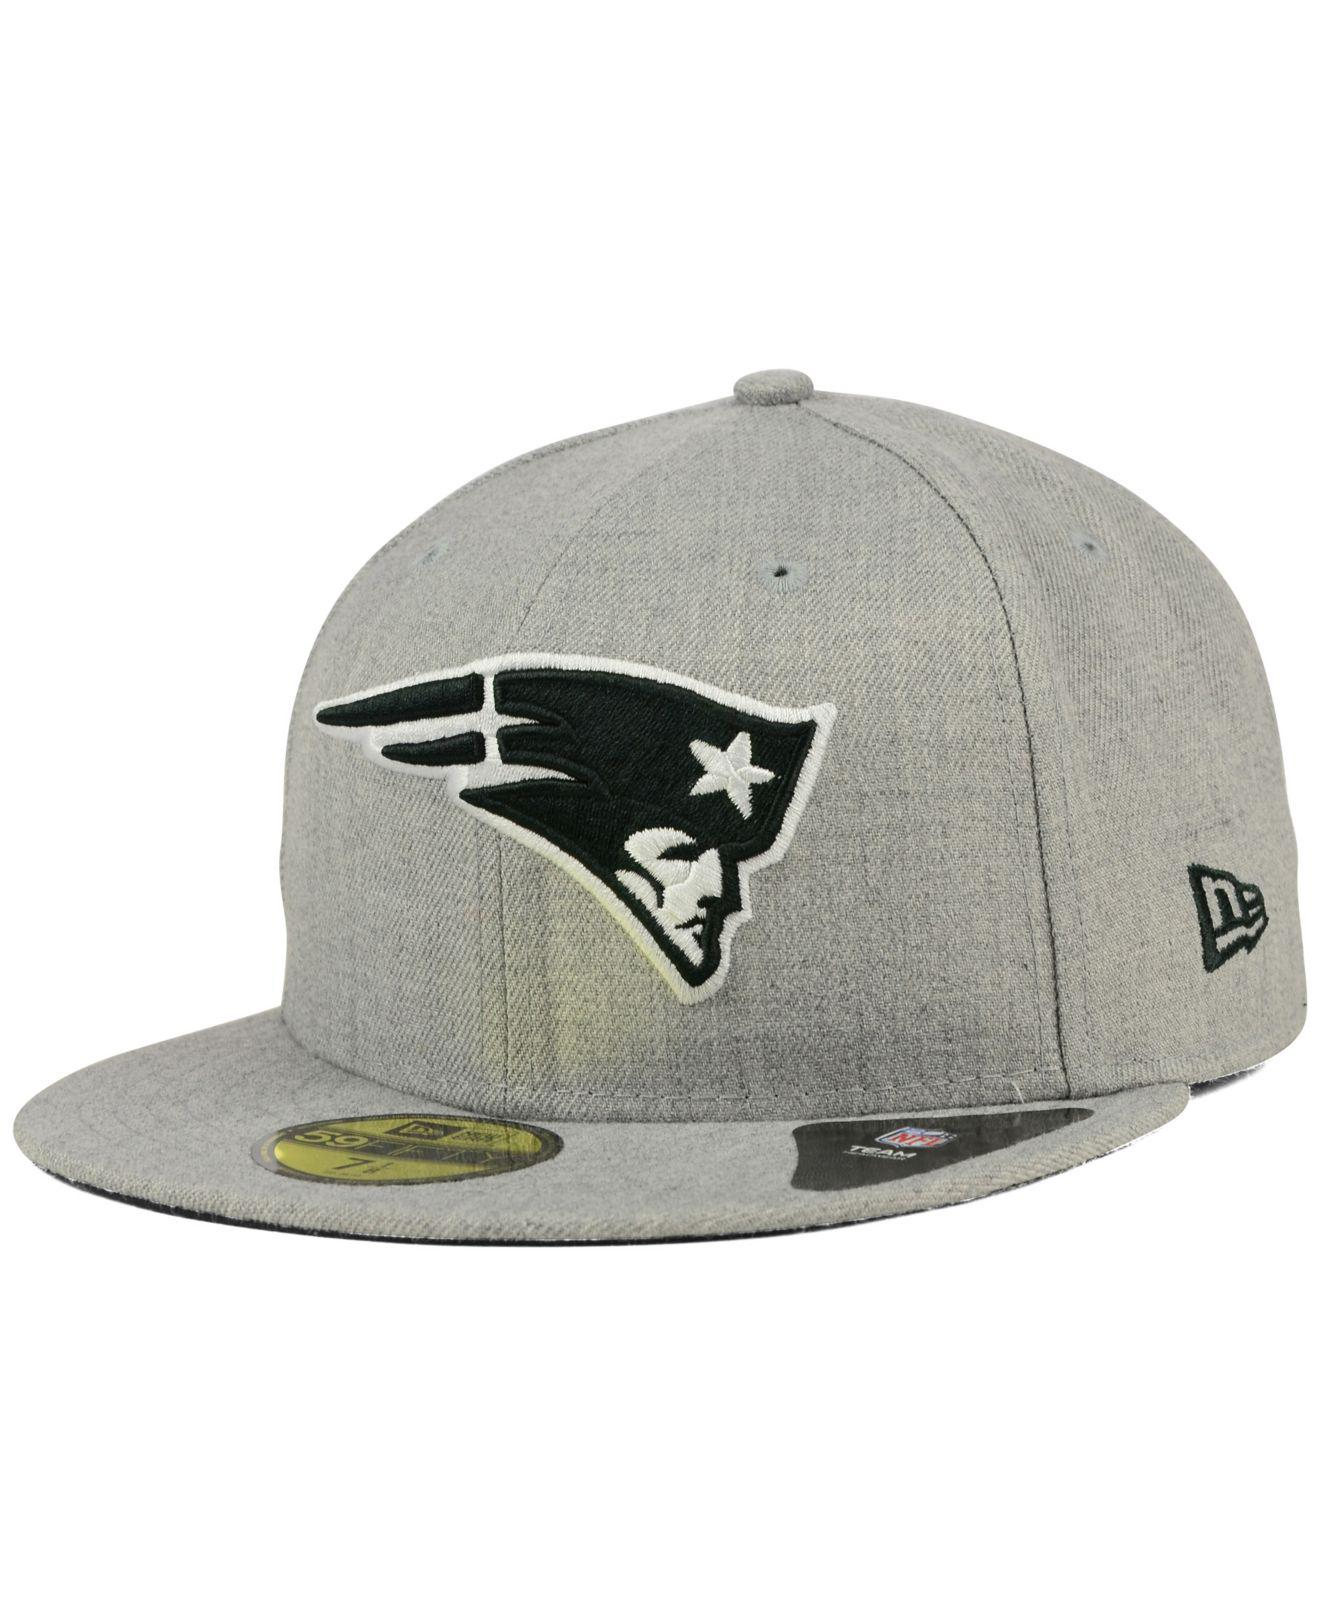 Lyst - KTZ New England Patriots Heather Black White 59fifty Cap in ... ae53a268f